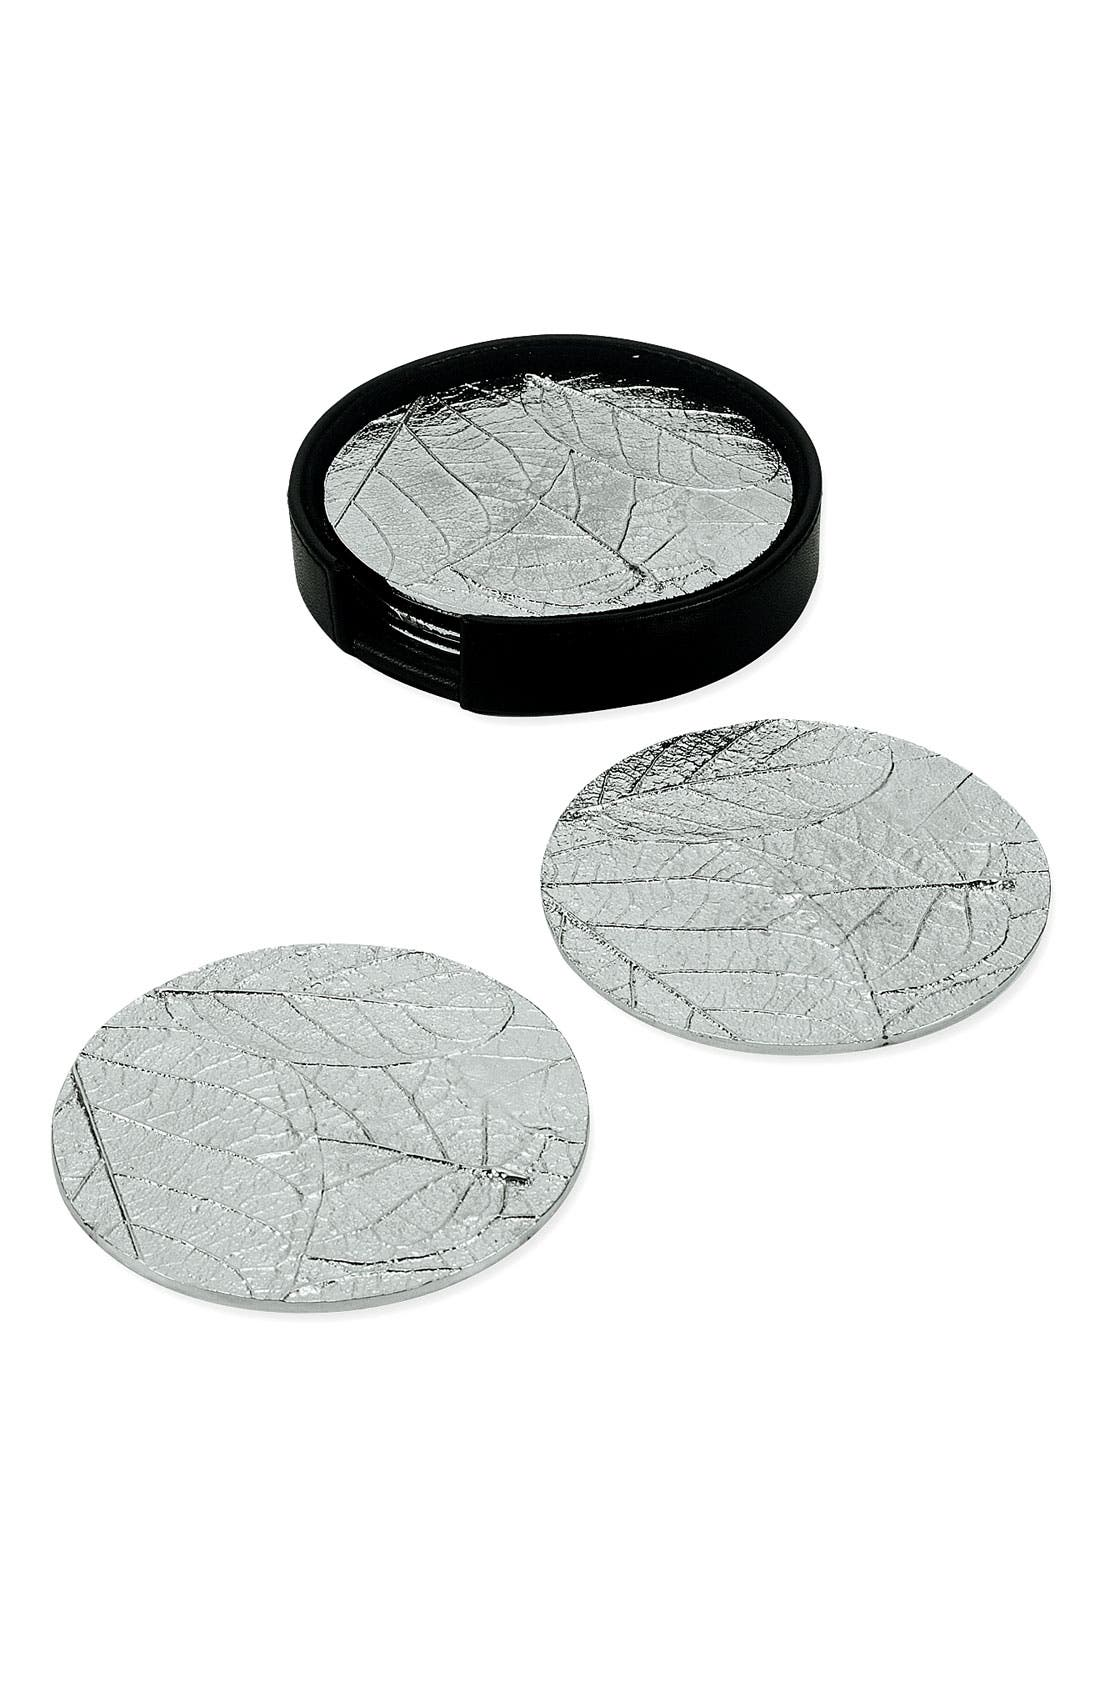 Main Image - Michael Aram 'Forest Leaf' Coasters (Set of 6)